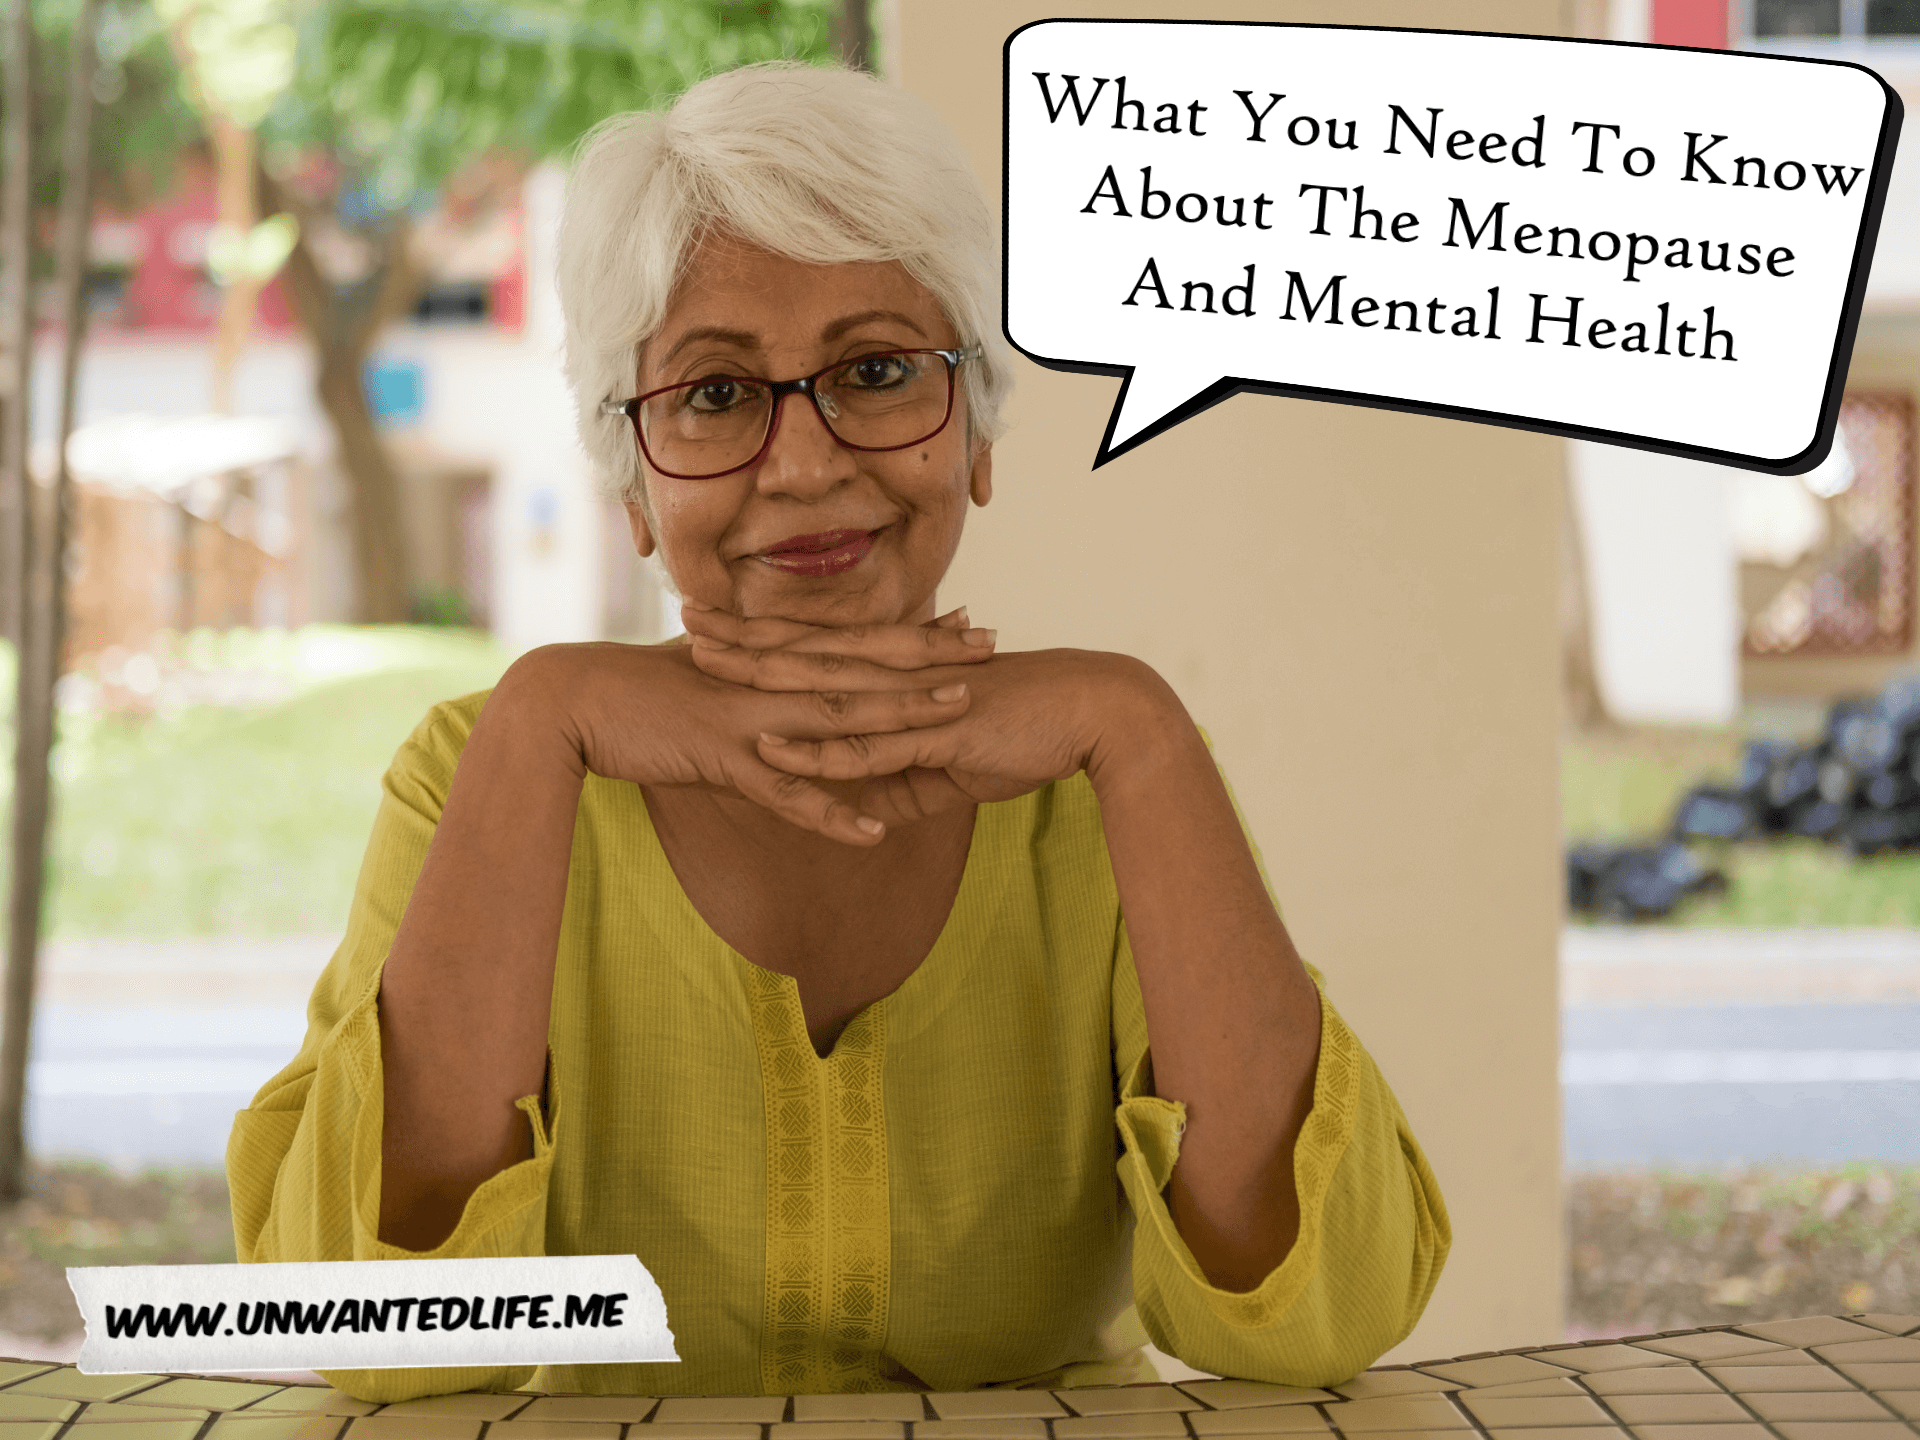 A photo of a mature woman of Indian decent sitting at a table with her hands resting on her hands with to represent the topic of the article - What You Need To Know About The Menopause And Mental Health